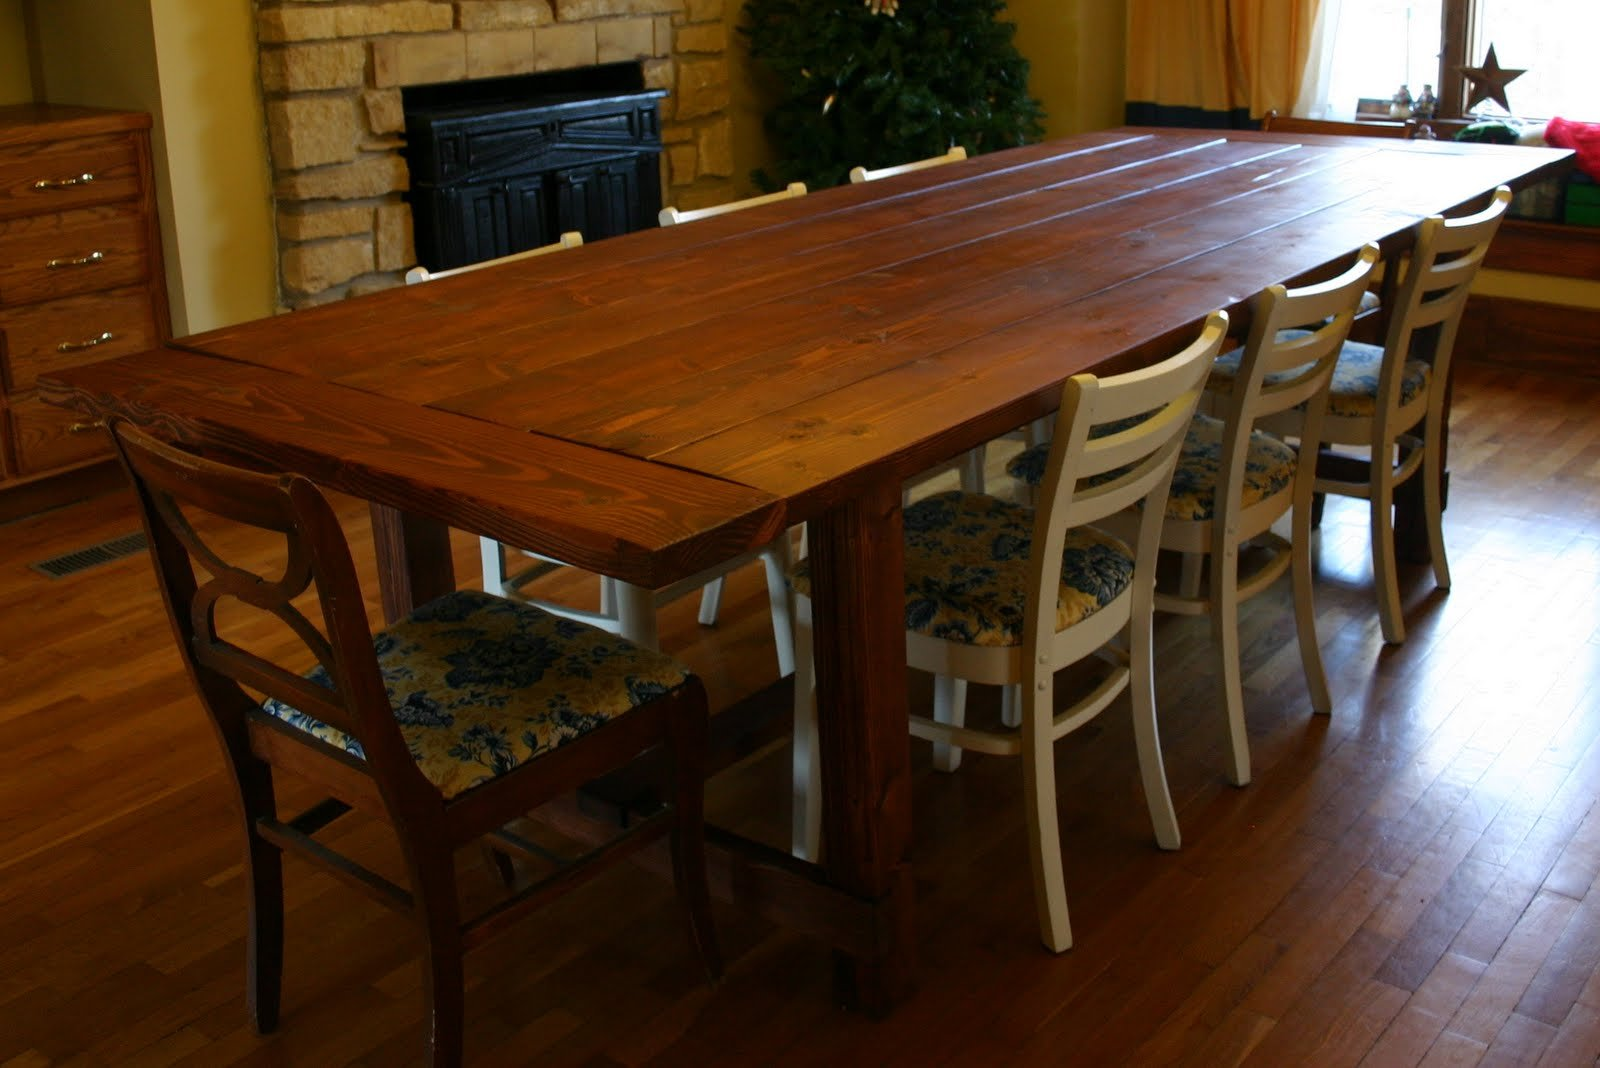 German jello salad rustic dining table i built from free for Building a farmhouse